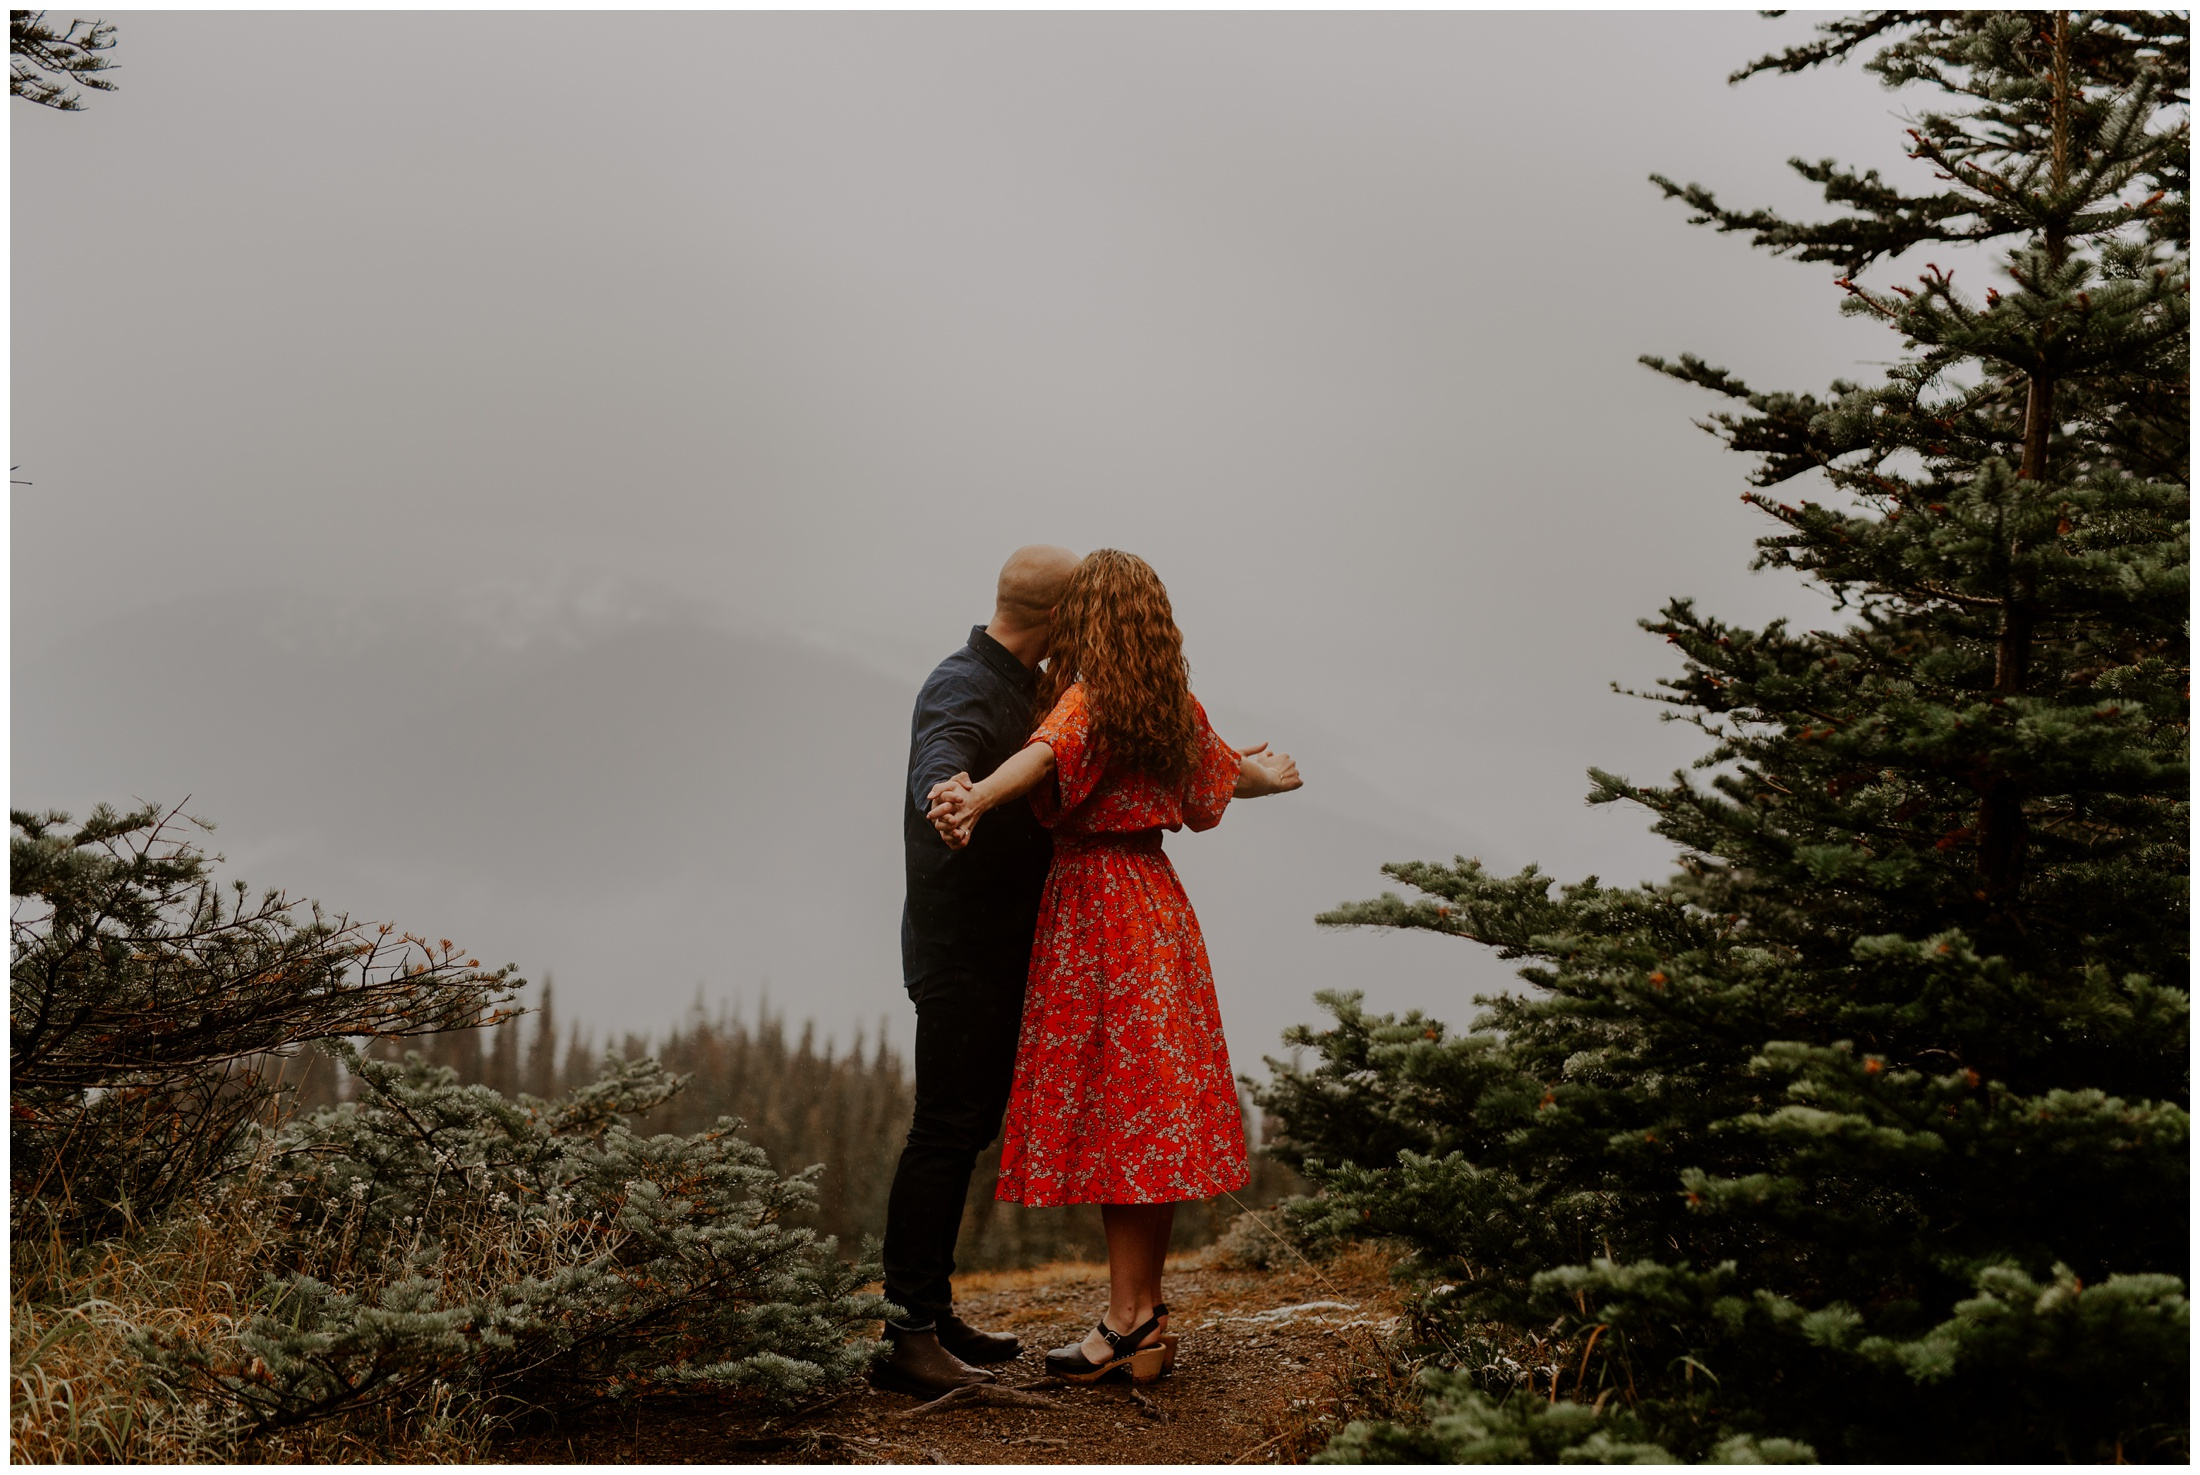 Olympic National Park Engagements | Jessica Heron Images 010.JPG